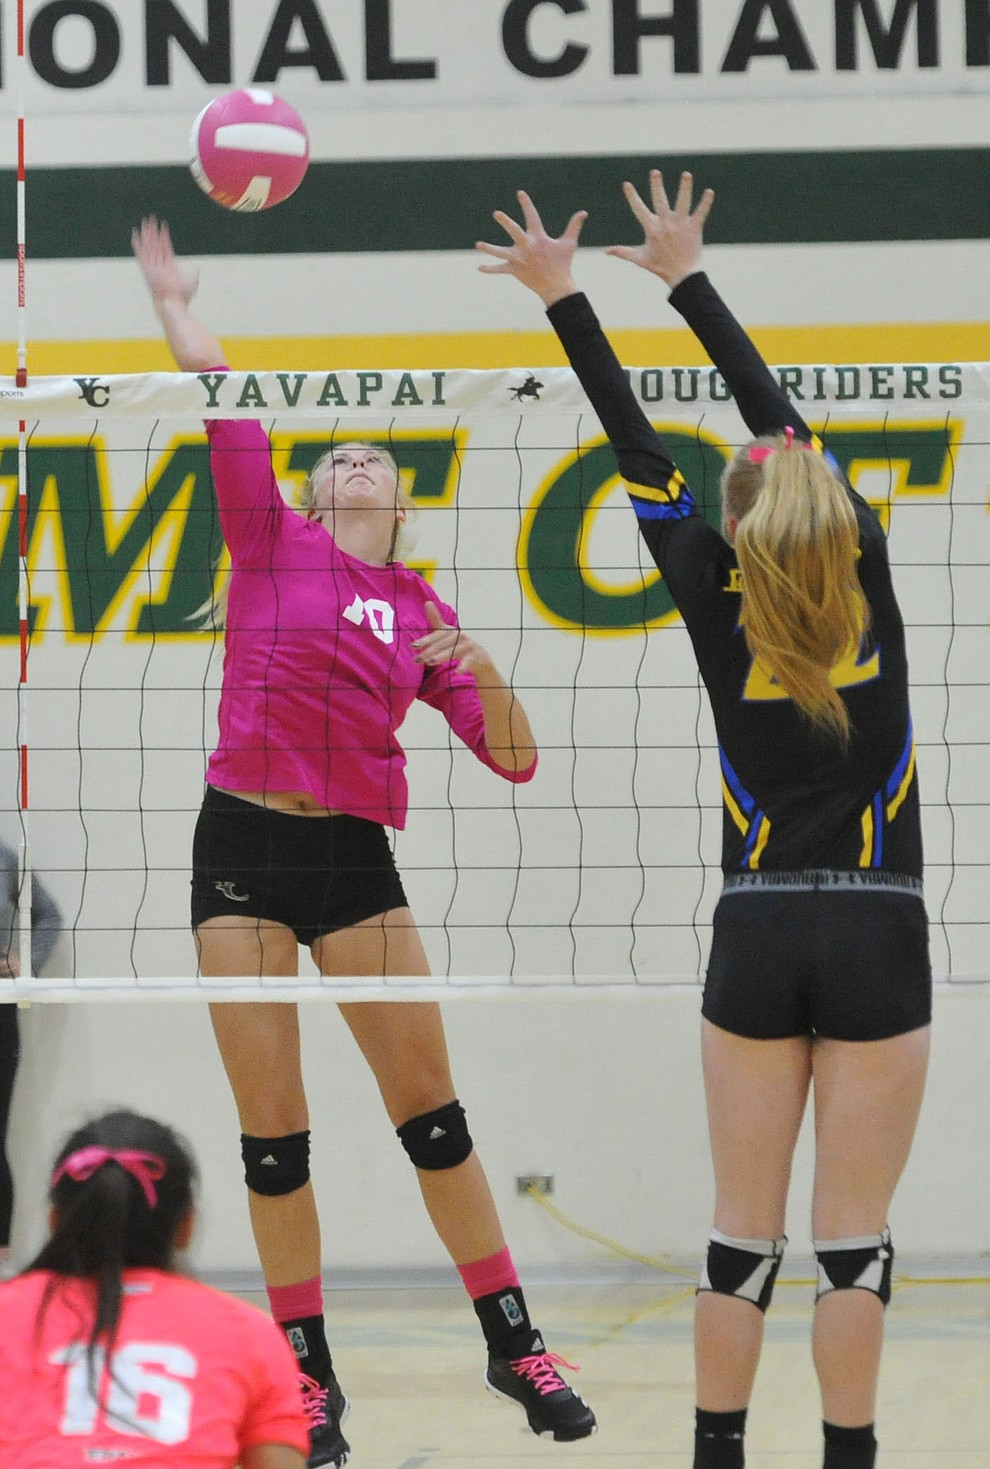 Yavapai's Bailey Anderson (10) goes for a kill against ERAU's Lyndsey Weiler (22) in the Battle Against Breast Cancer volleyball game Wednesday night at Yavapai College in Prescott. (Les Stukenberg/Courier)